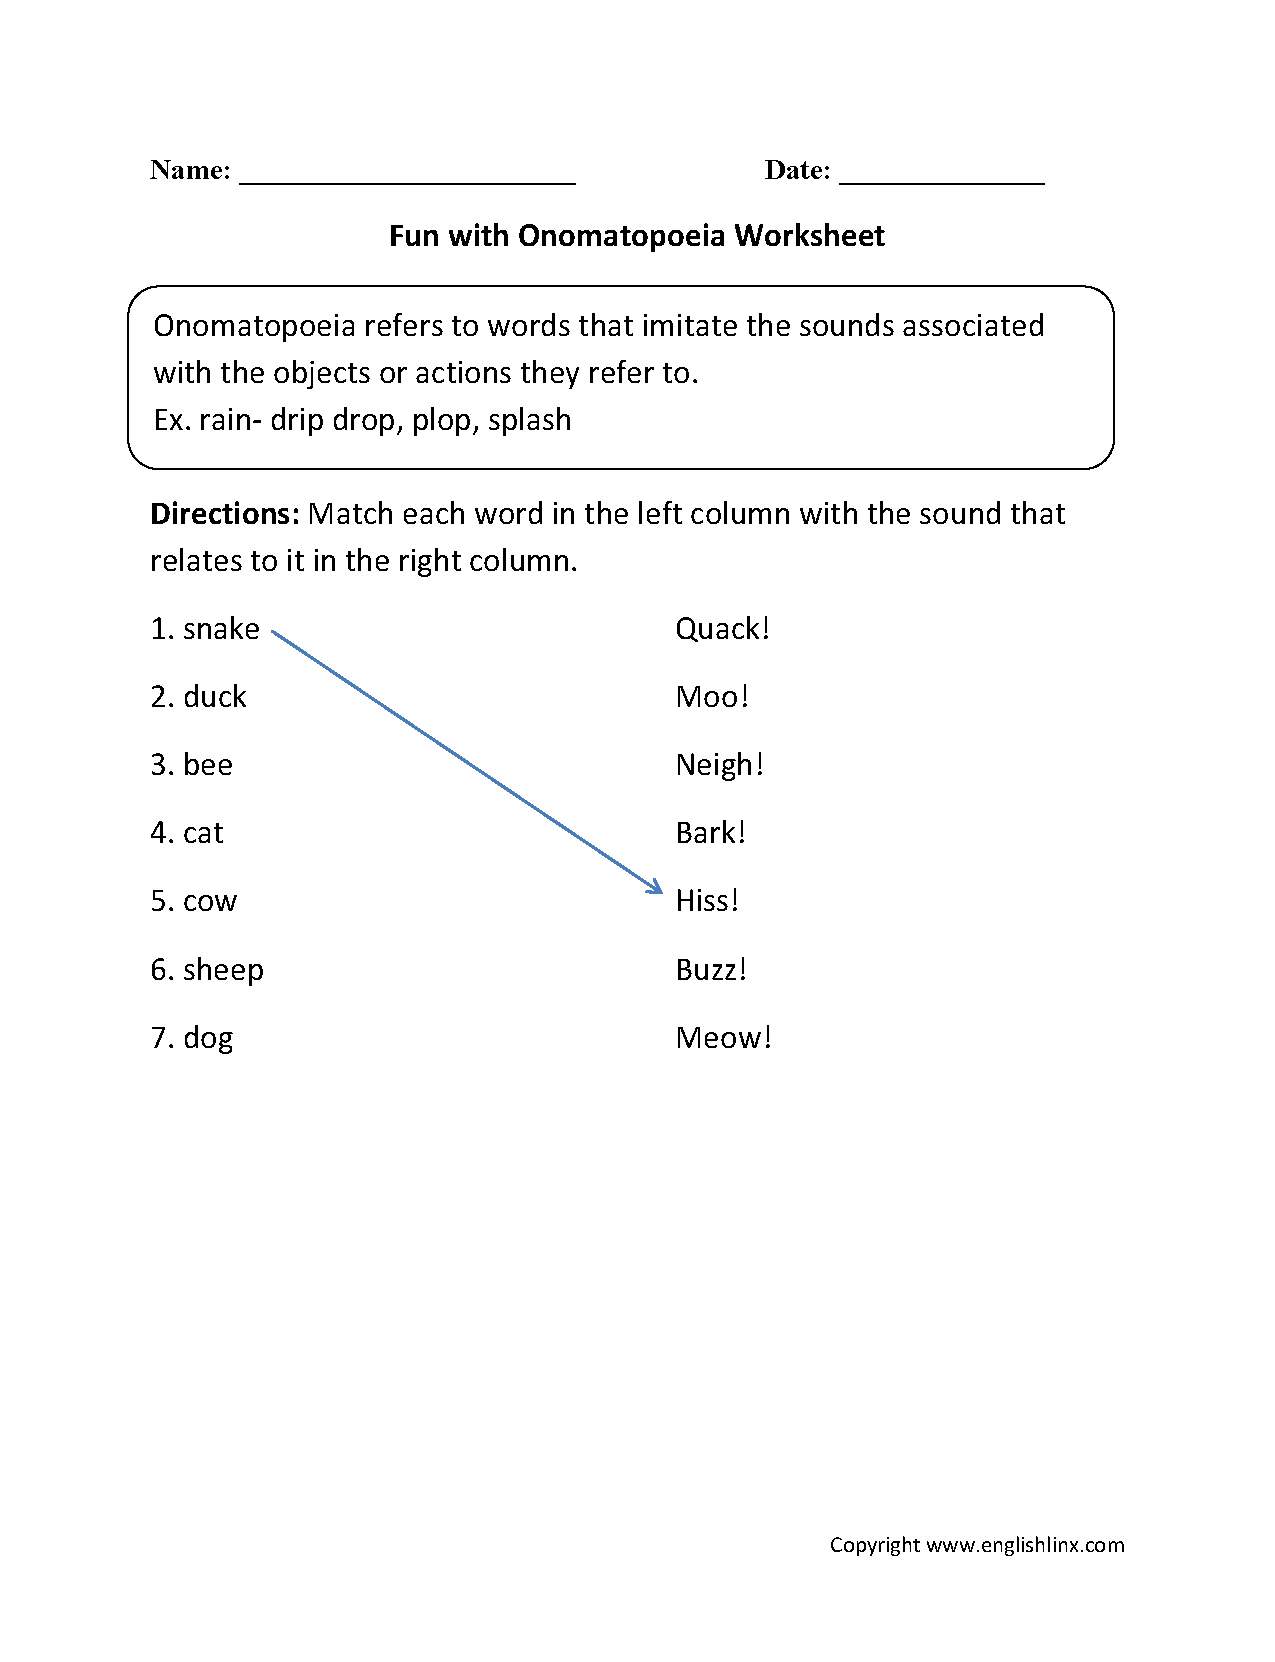 Worksheets Onomatopoeia Worksheet figurative language worksheets onomatopoeia worksheets